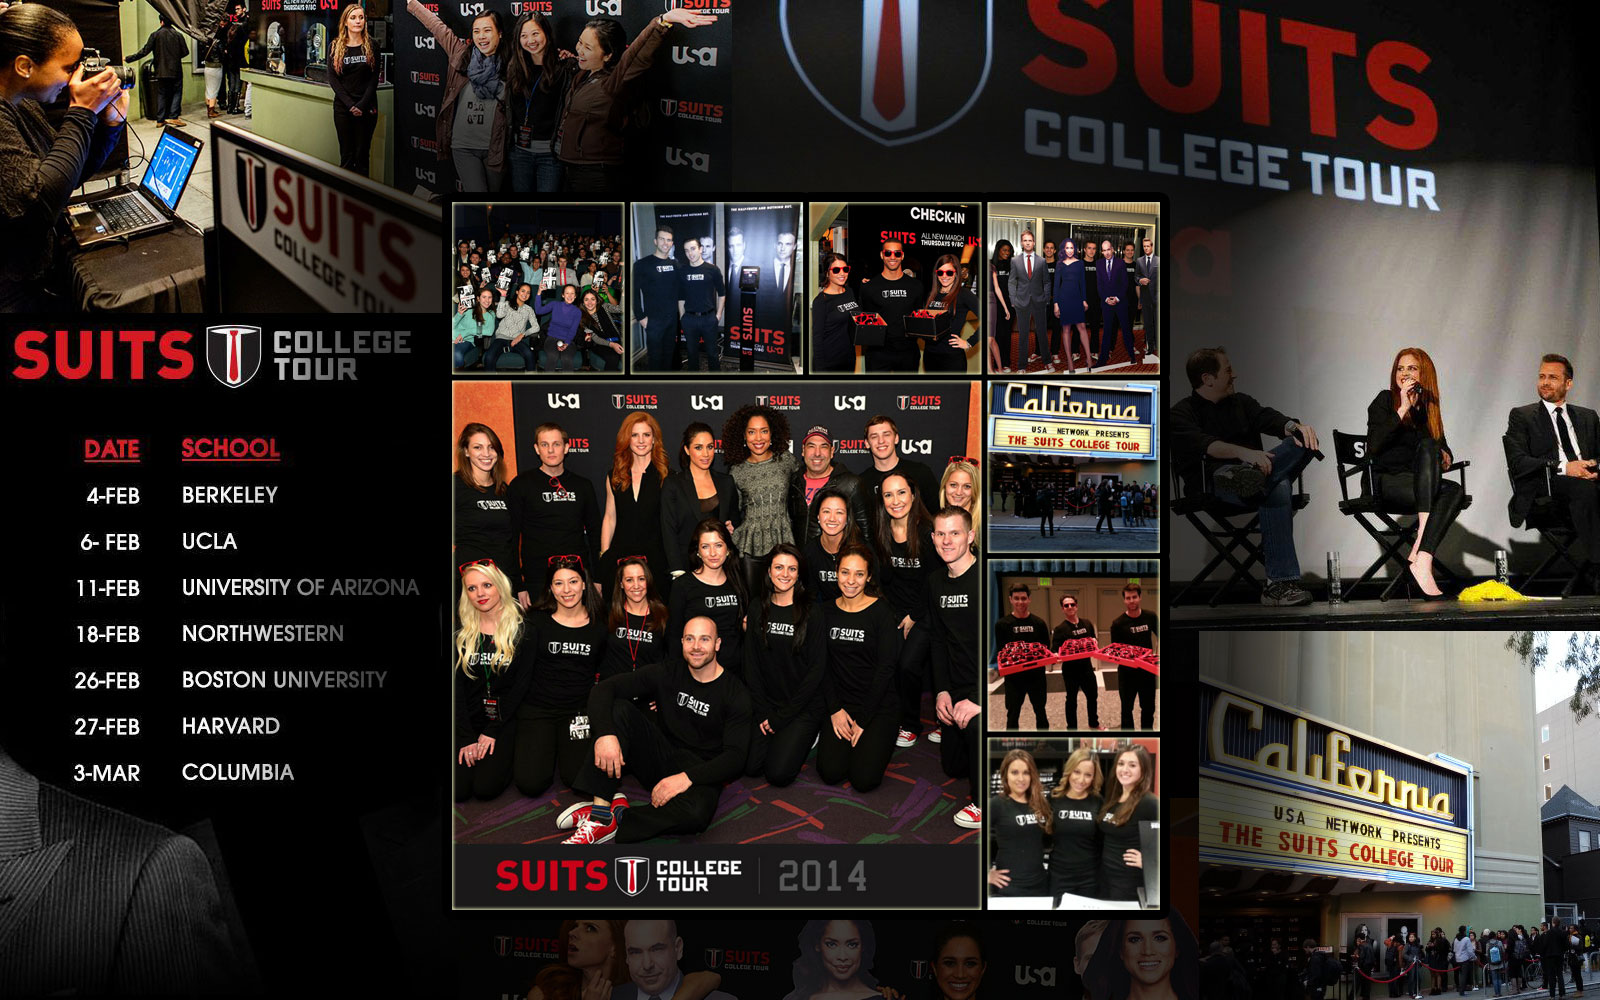 On Tour 24/7's Promotional Models working in support of USA's The Suits College Tour.